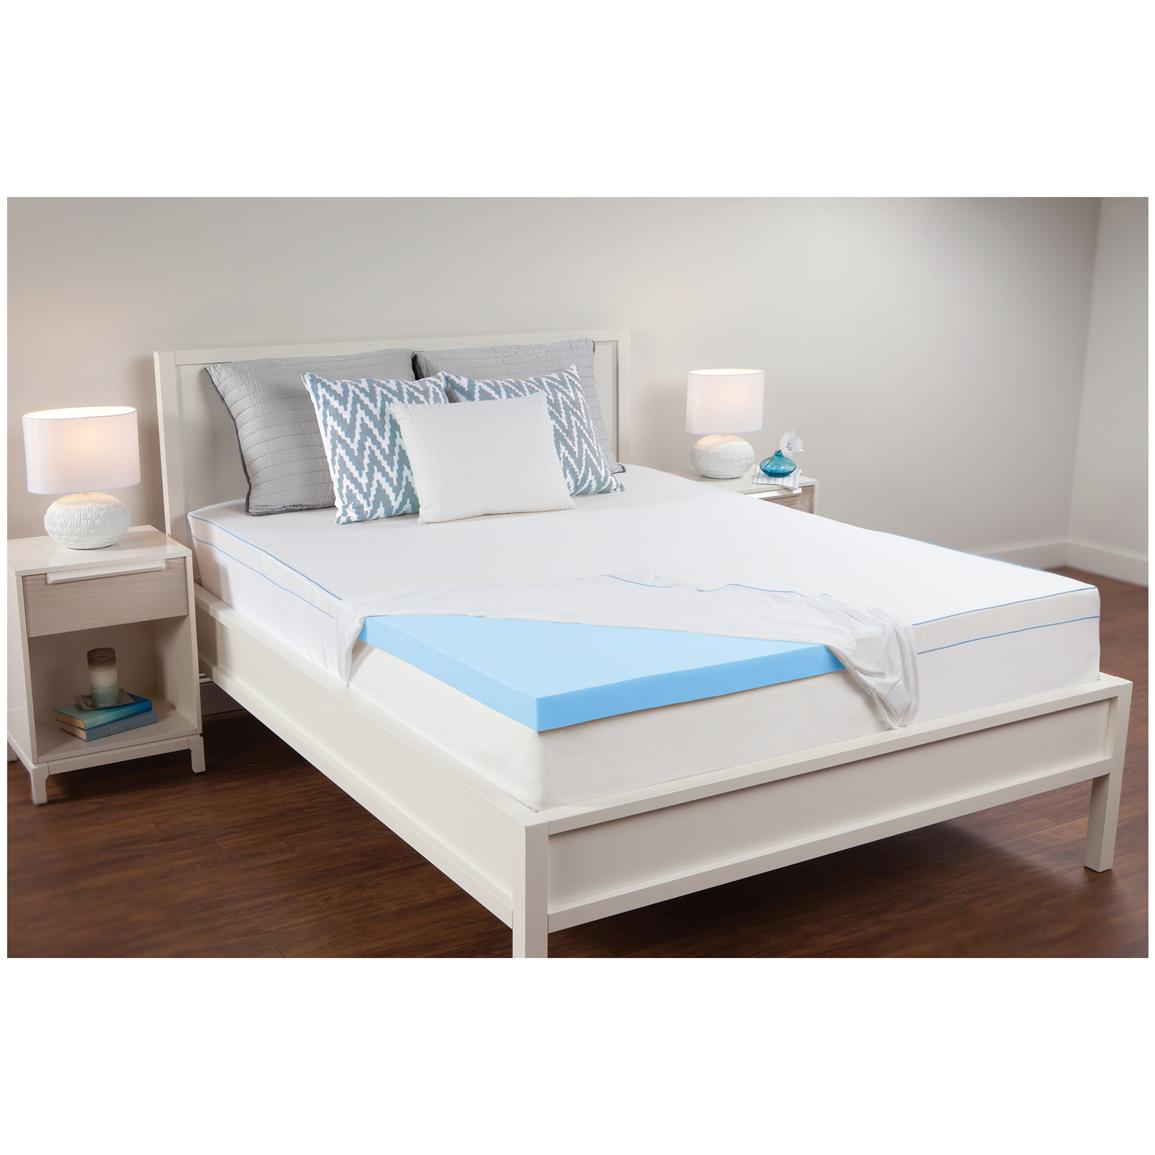 Sealy 2 5 Memory Foam Mattress Topper 608323 Mattress Toppers At Sportsman 39 S Guide